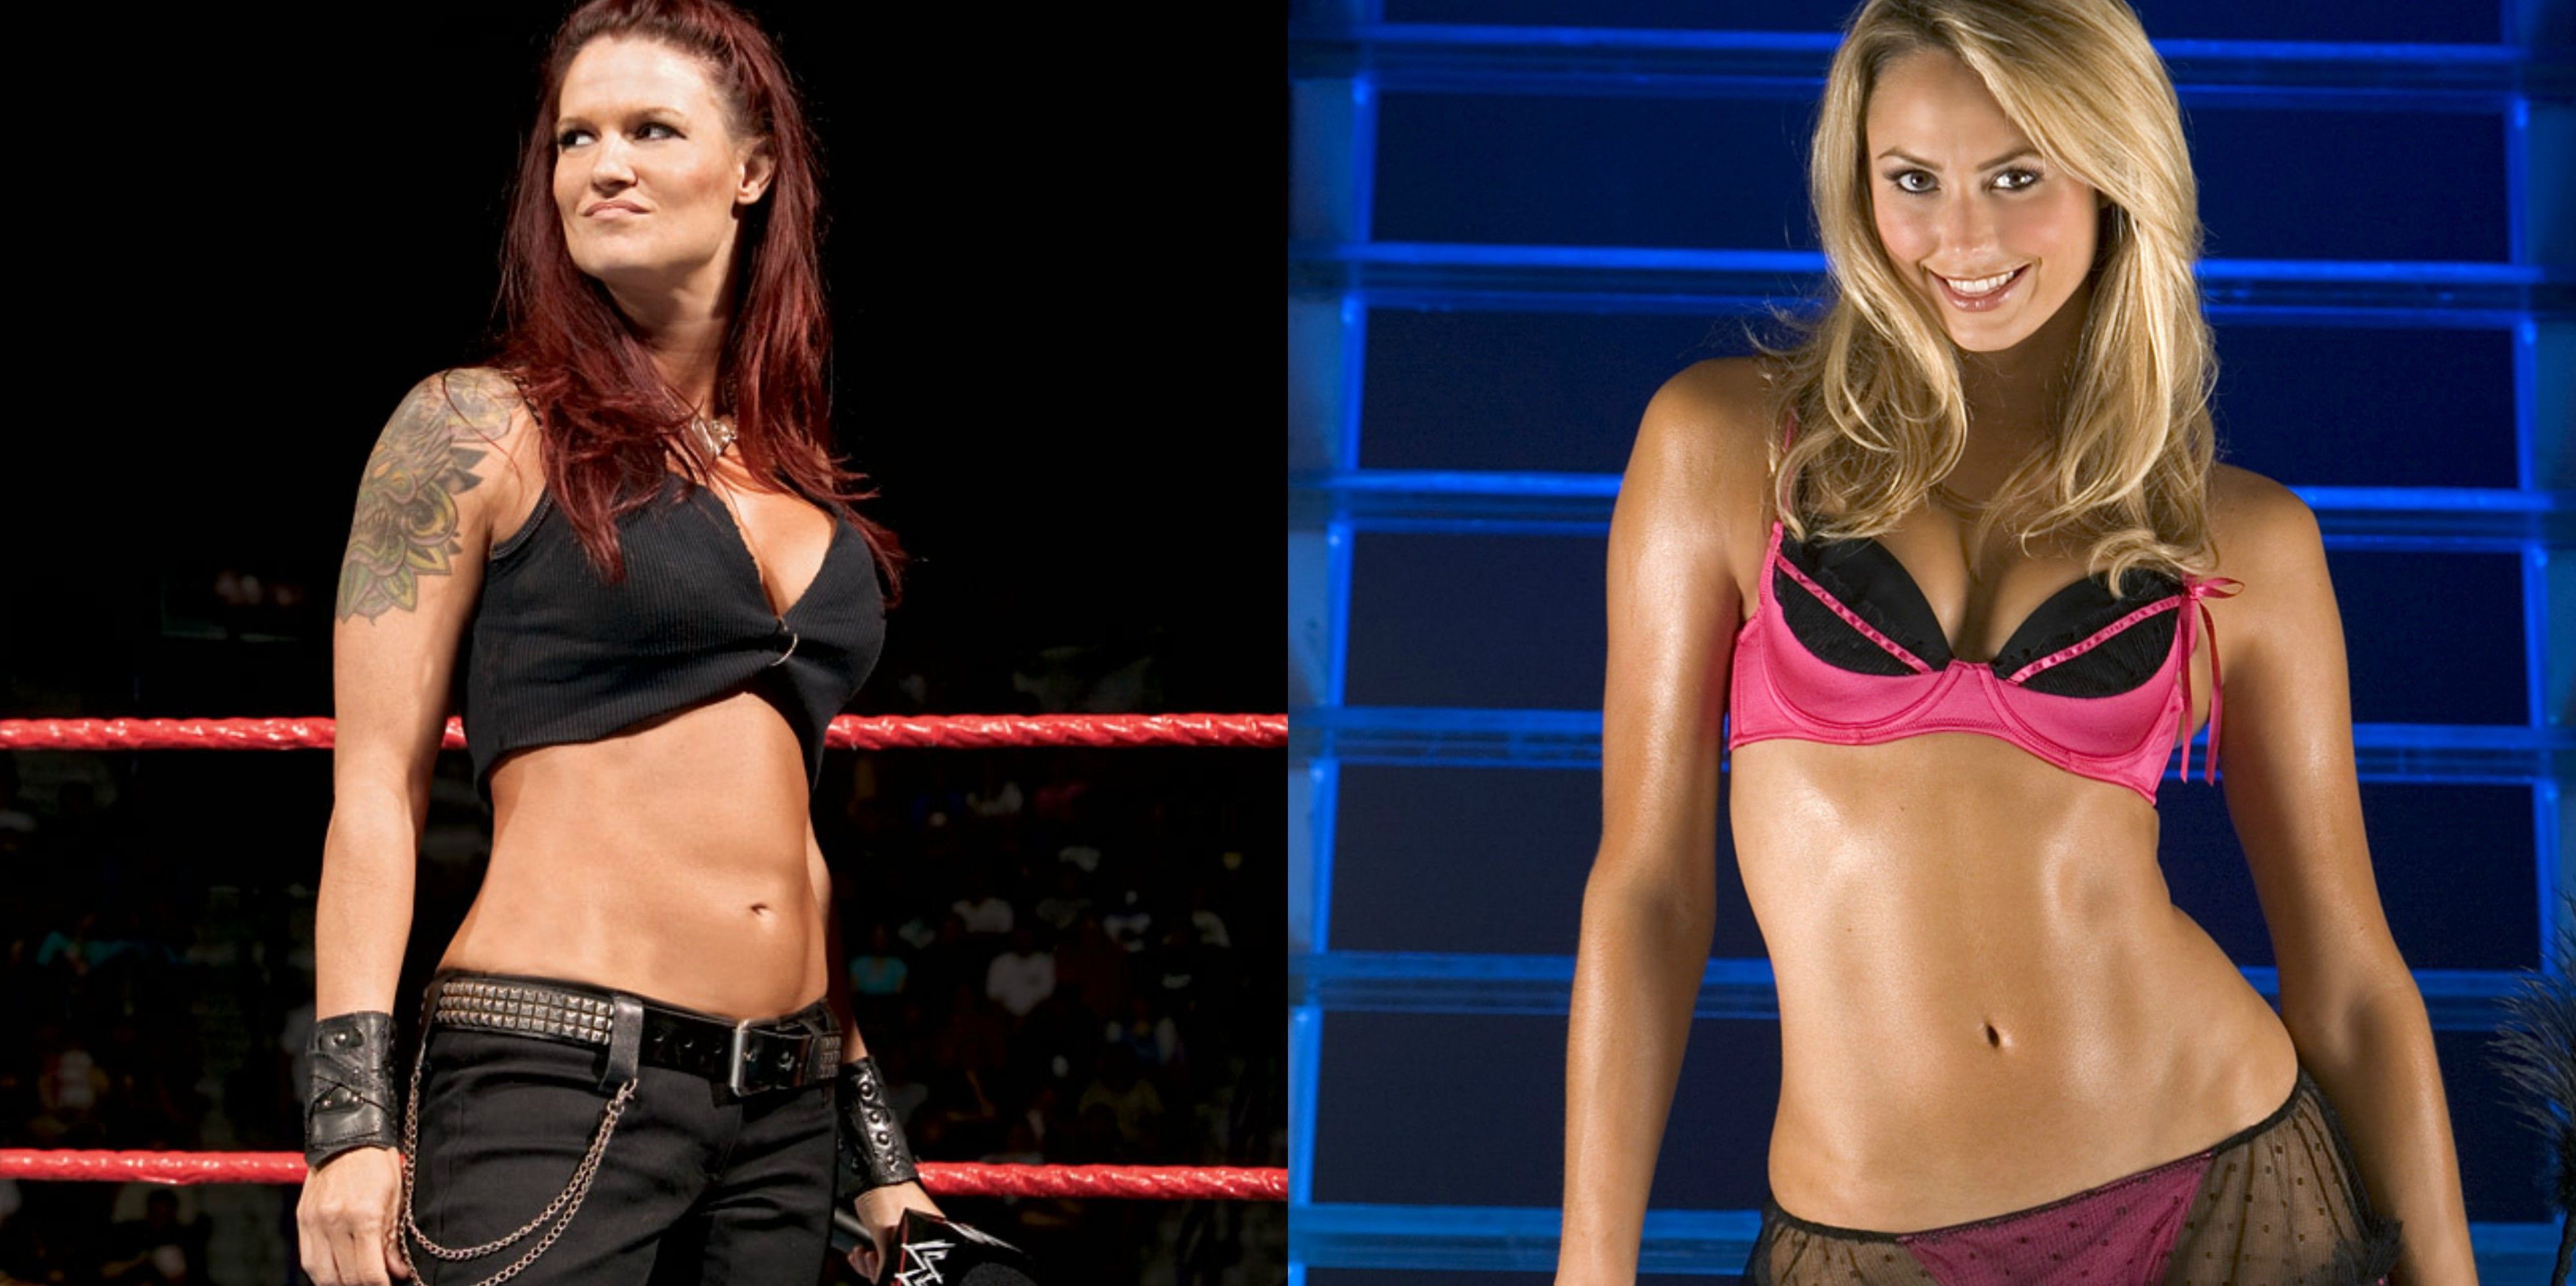 10 Wwe Divas Who Are Remembered For Their Wrestling Ability And 5 Who Arent